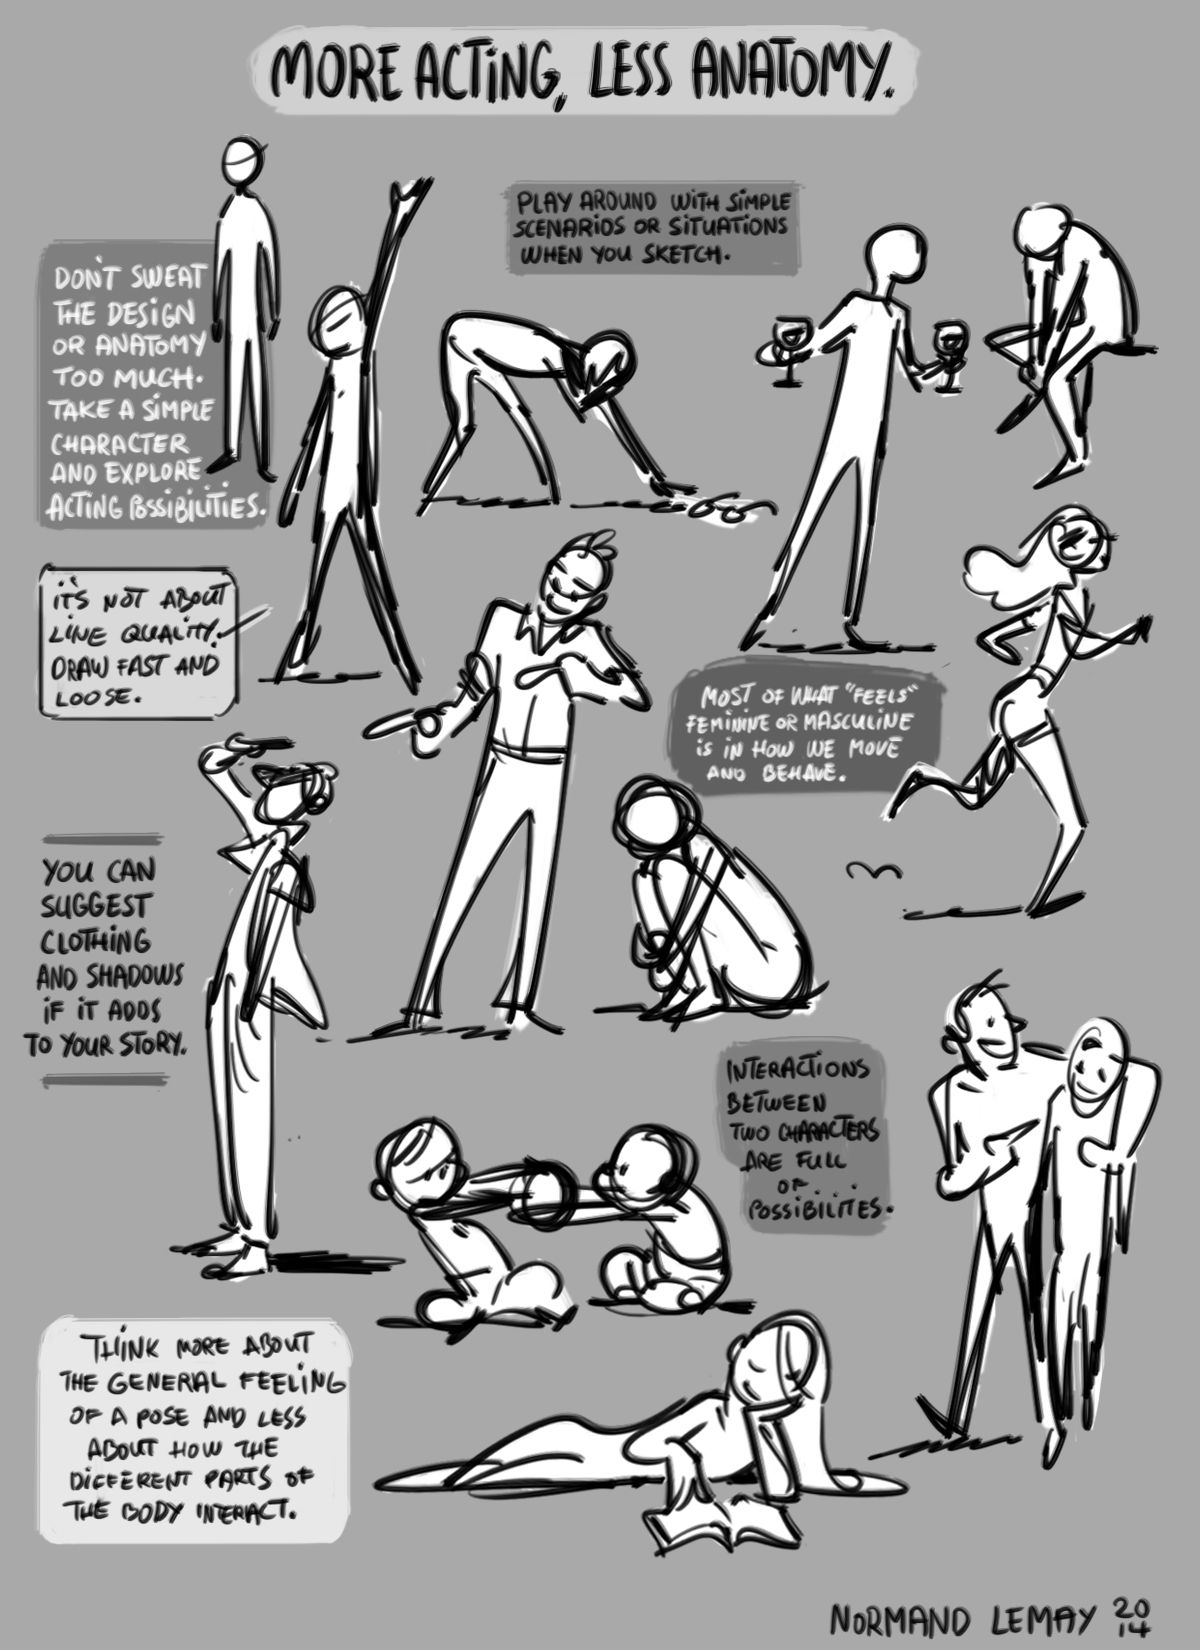 Character Design Manual : Another guide to cartoon poses this one focusing on quot less